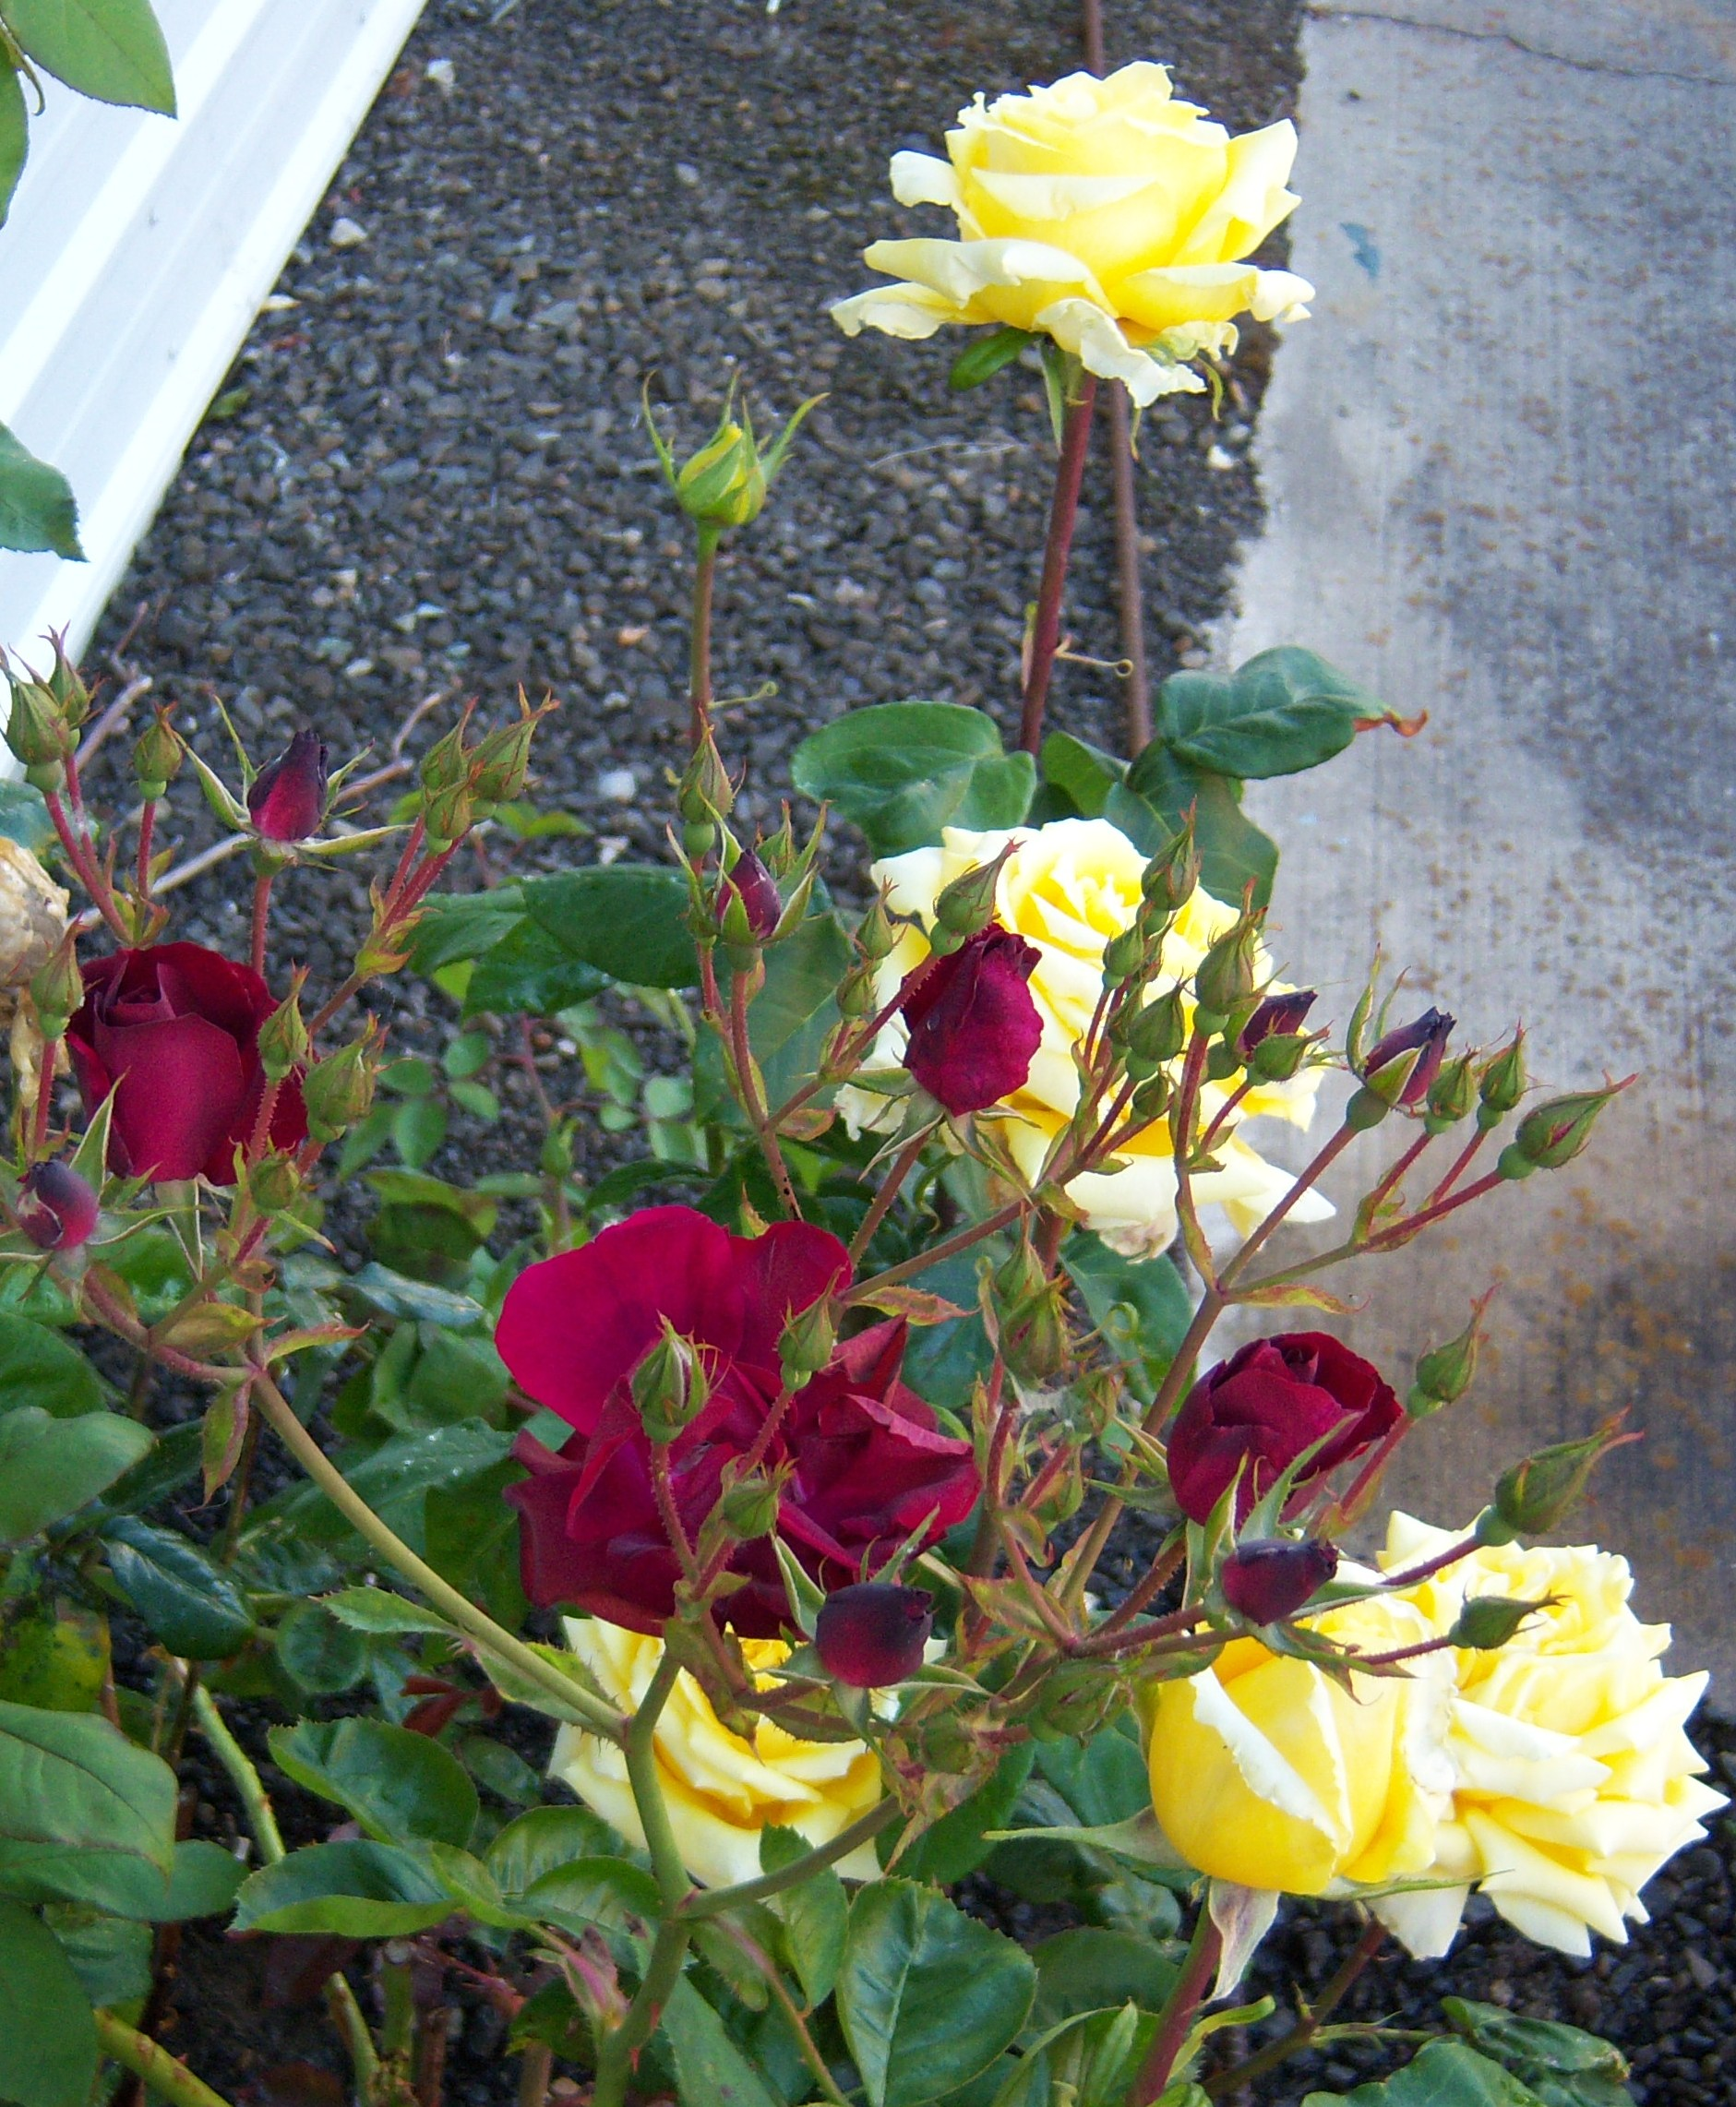 06-13-11The Red Roses Midst the Yellow Roses